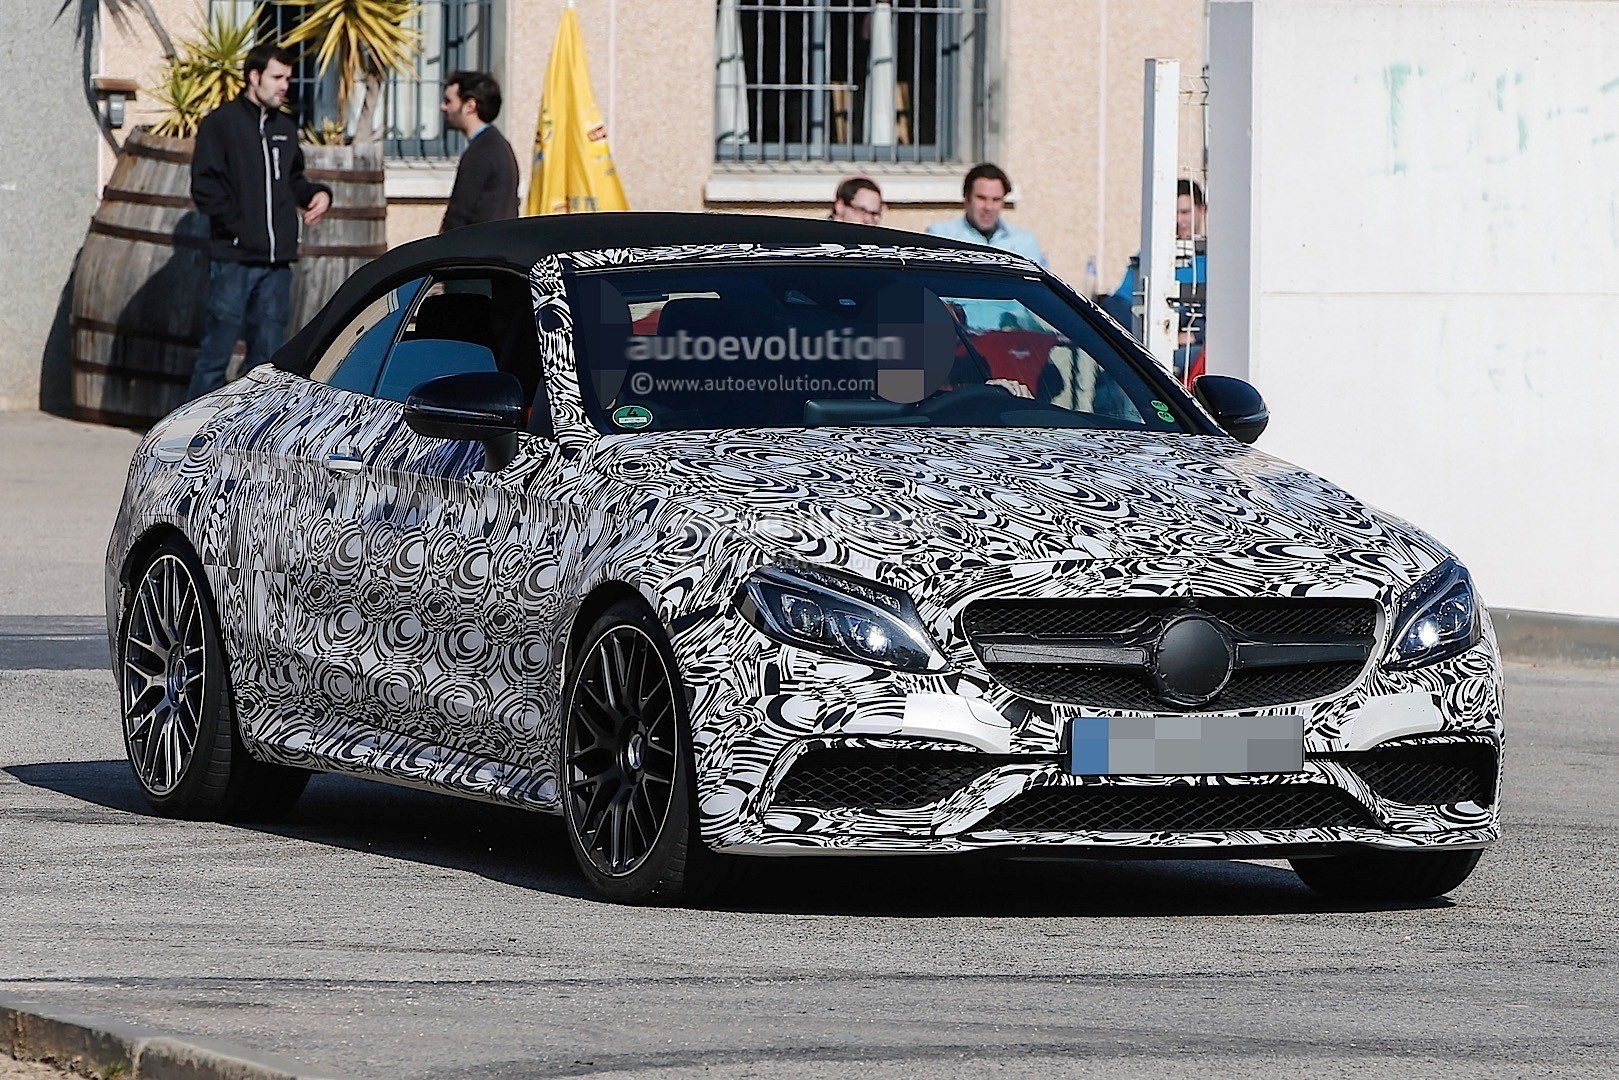 https://s1.cdn.autoevolution.com/images/news/gallery/2017-mercedes-amg-c63-cabriolet-is-wearing-mismatched-wheels-in-new-spyshots_1.jpg